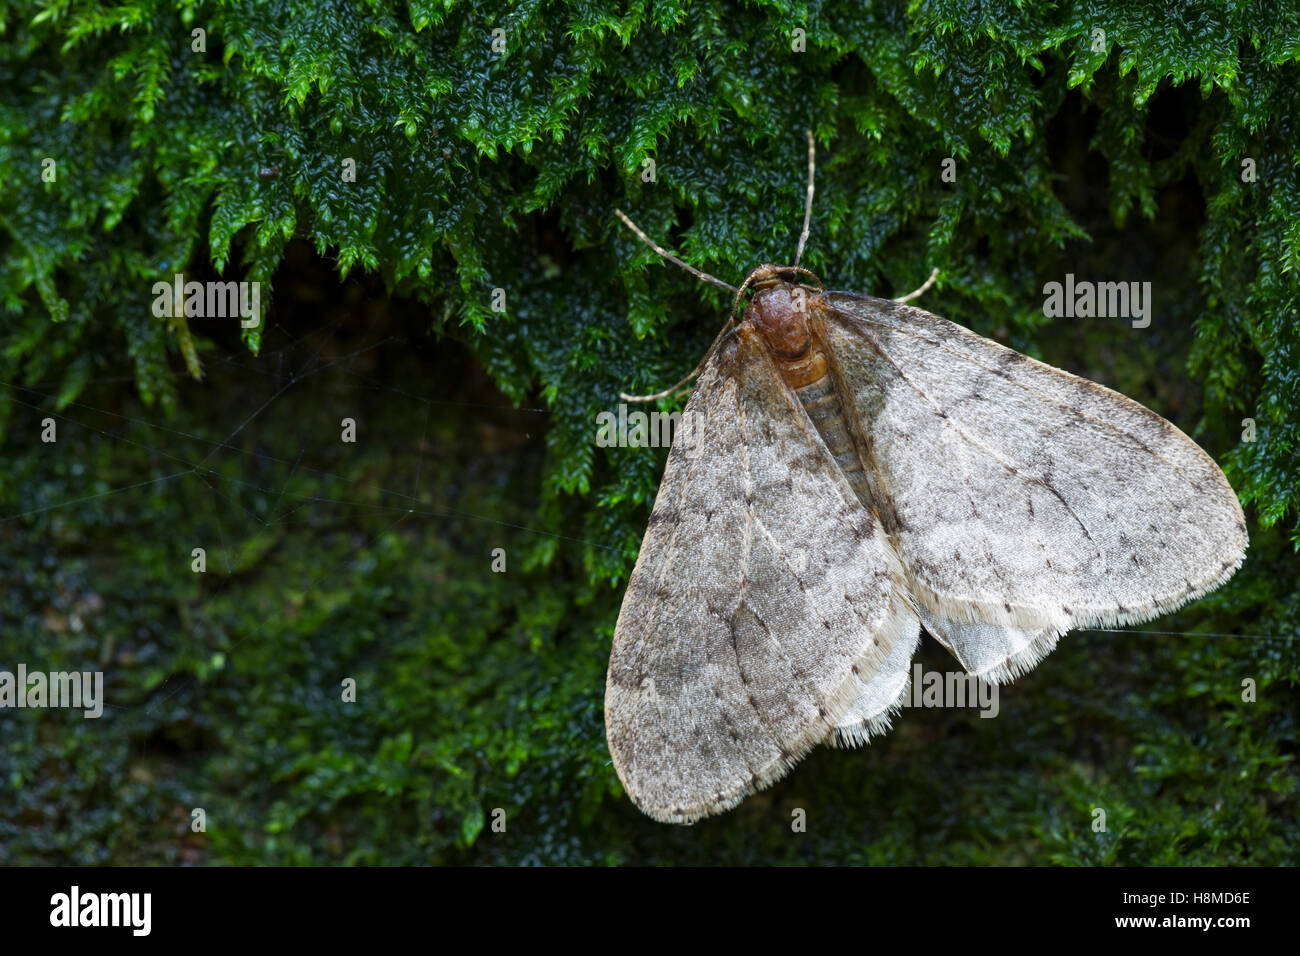 Beech Winter Moth, Northern Winter Moth (Operophtera fagata), male on moth. Germany - Stock Image